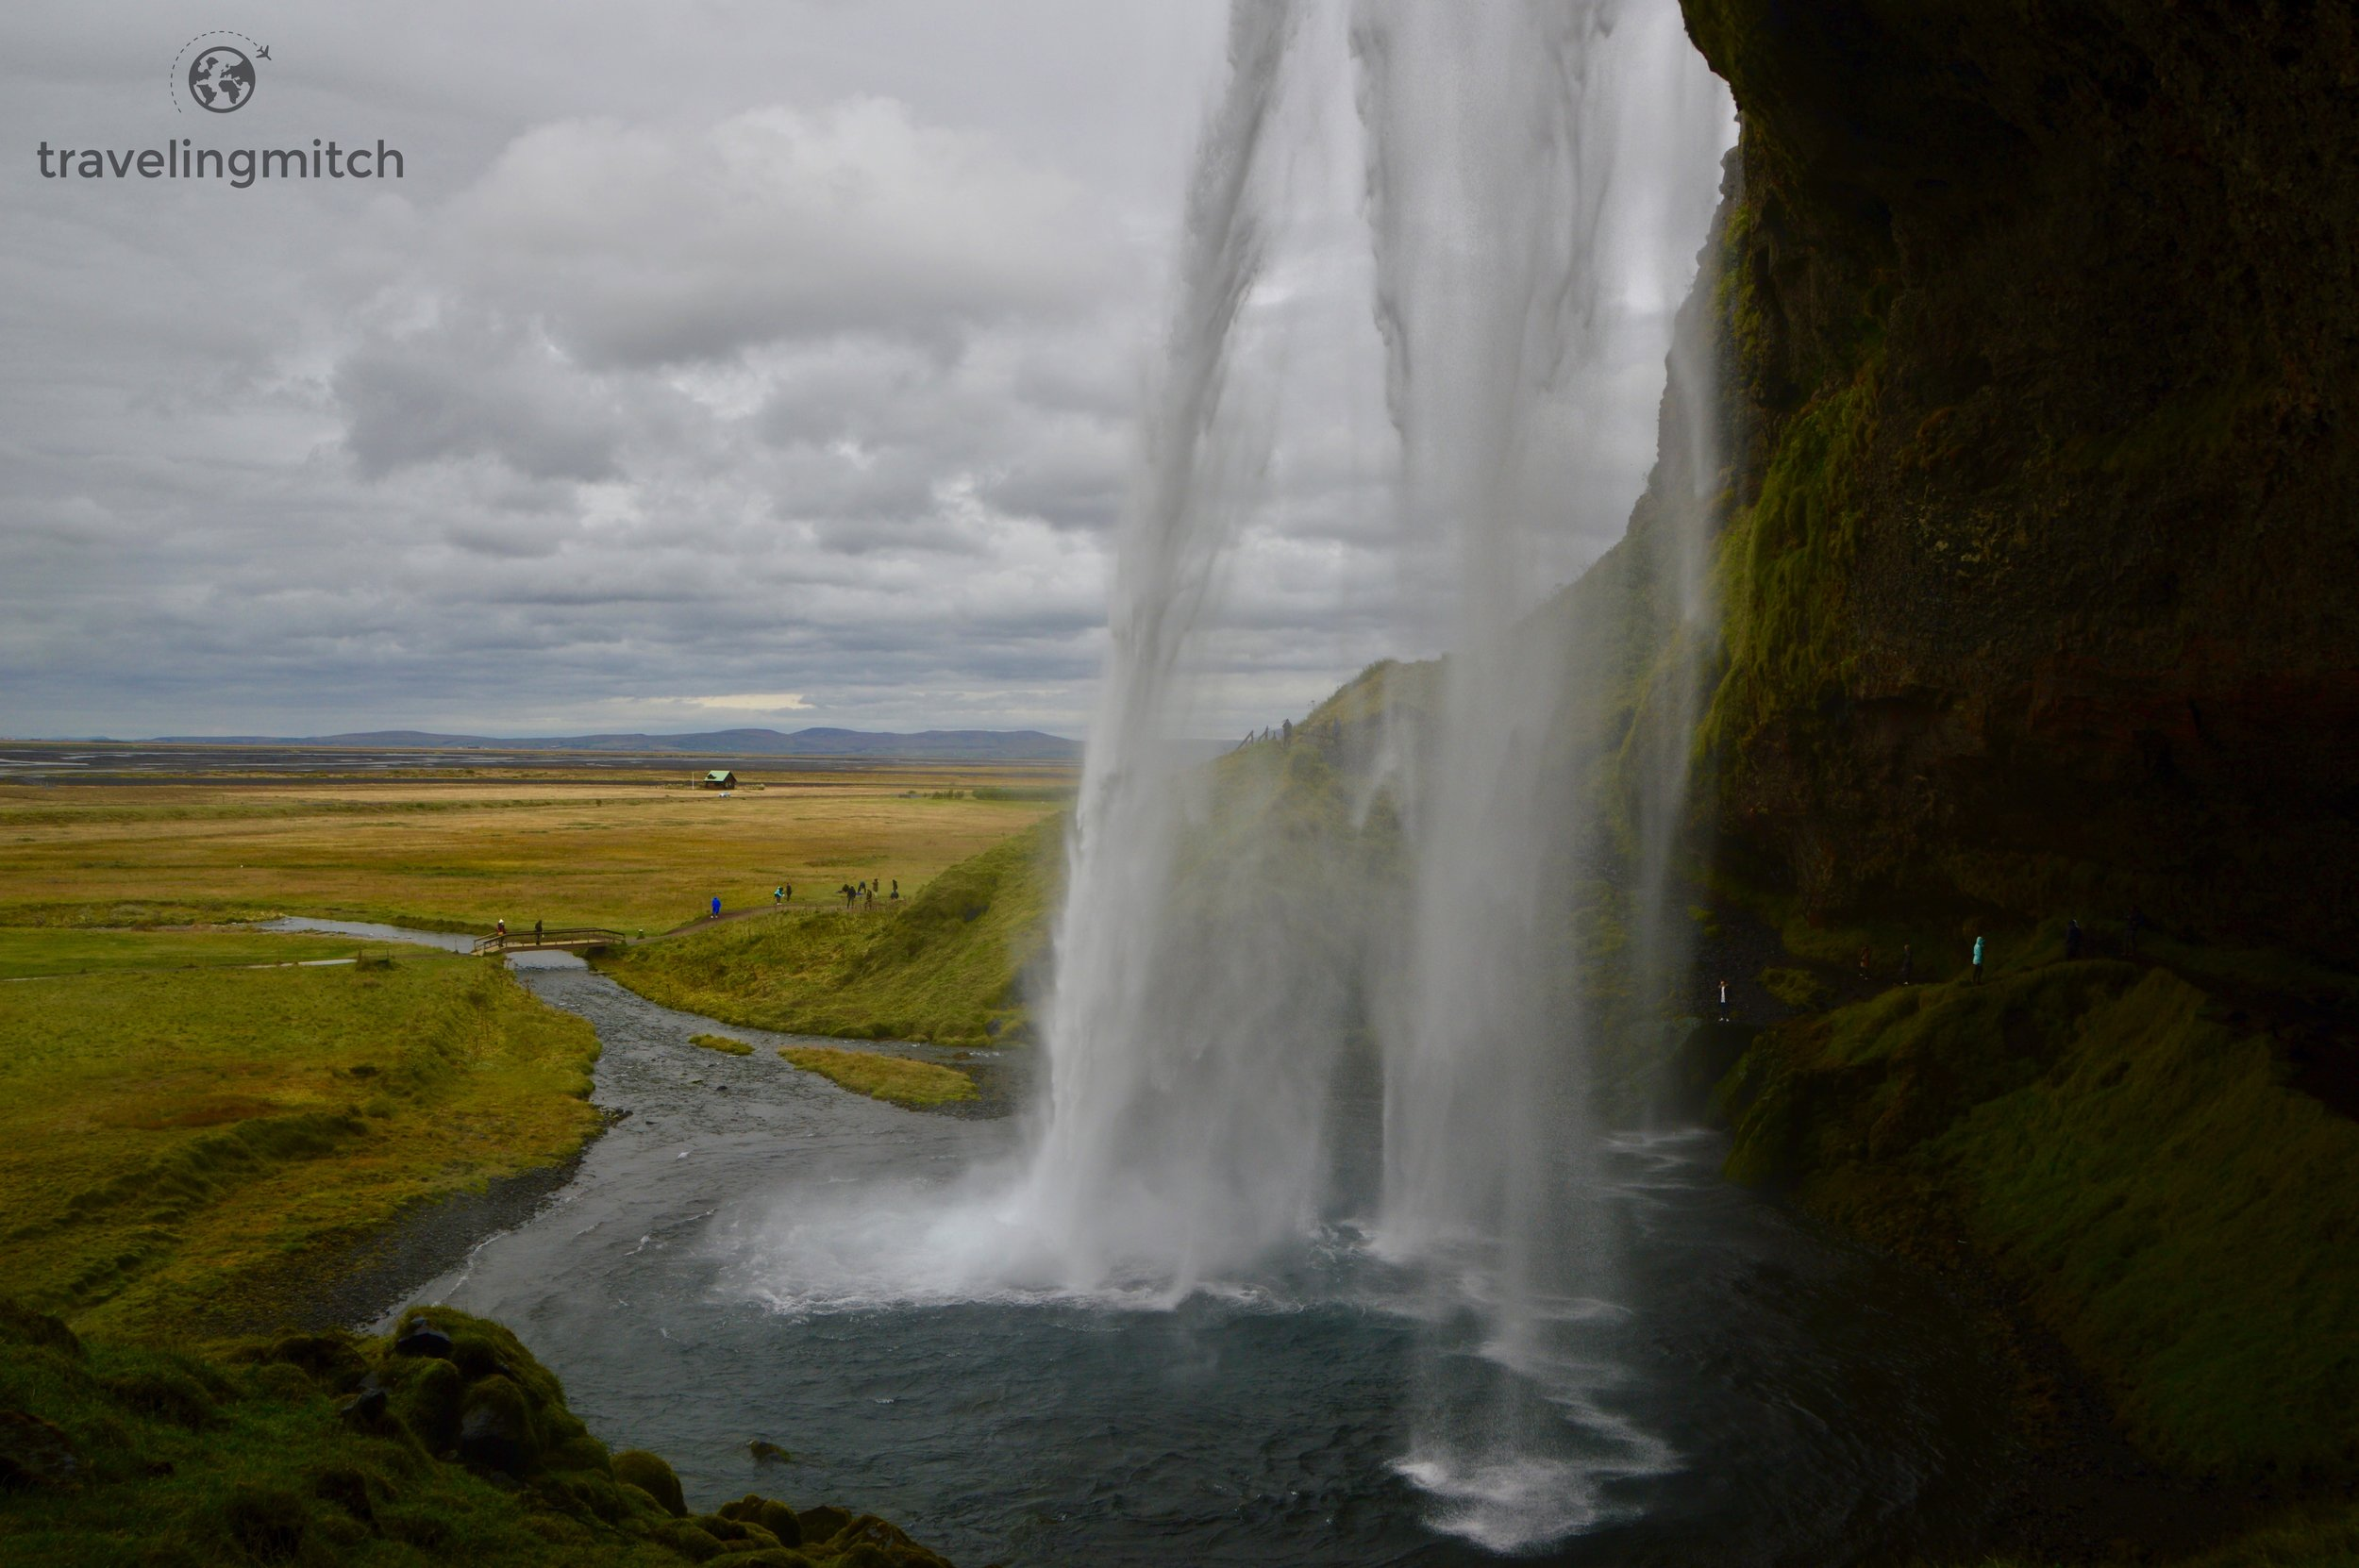 """Seljalandsfoss, one of the most famous waterfalls in """"Iceland""""... *cough cough* Narnia."""